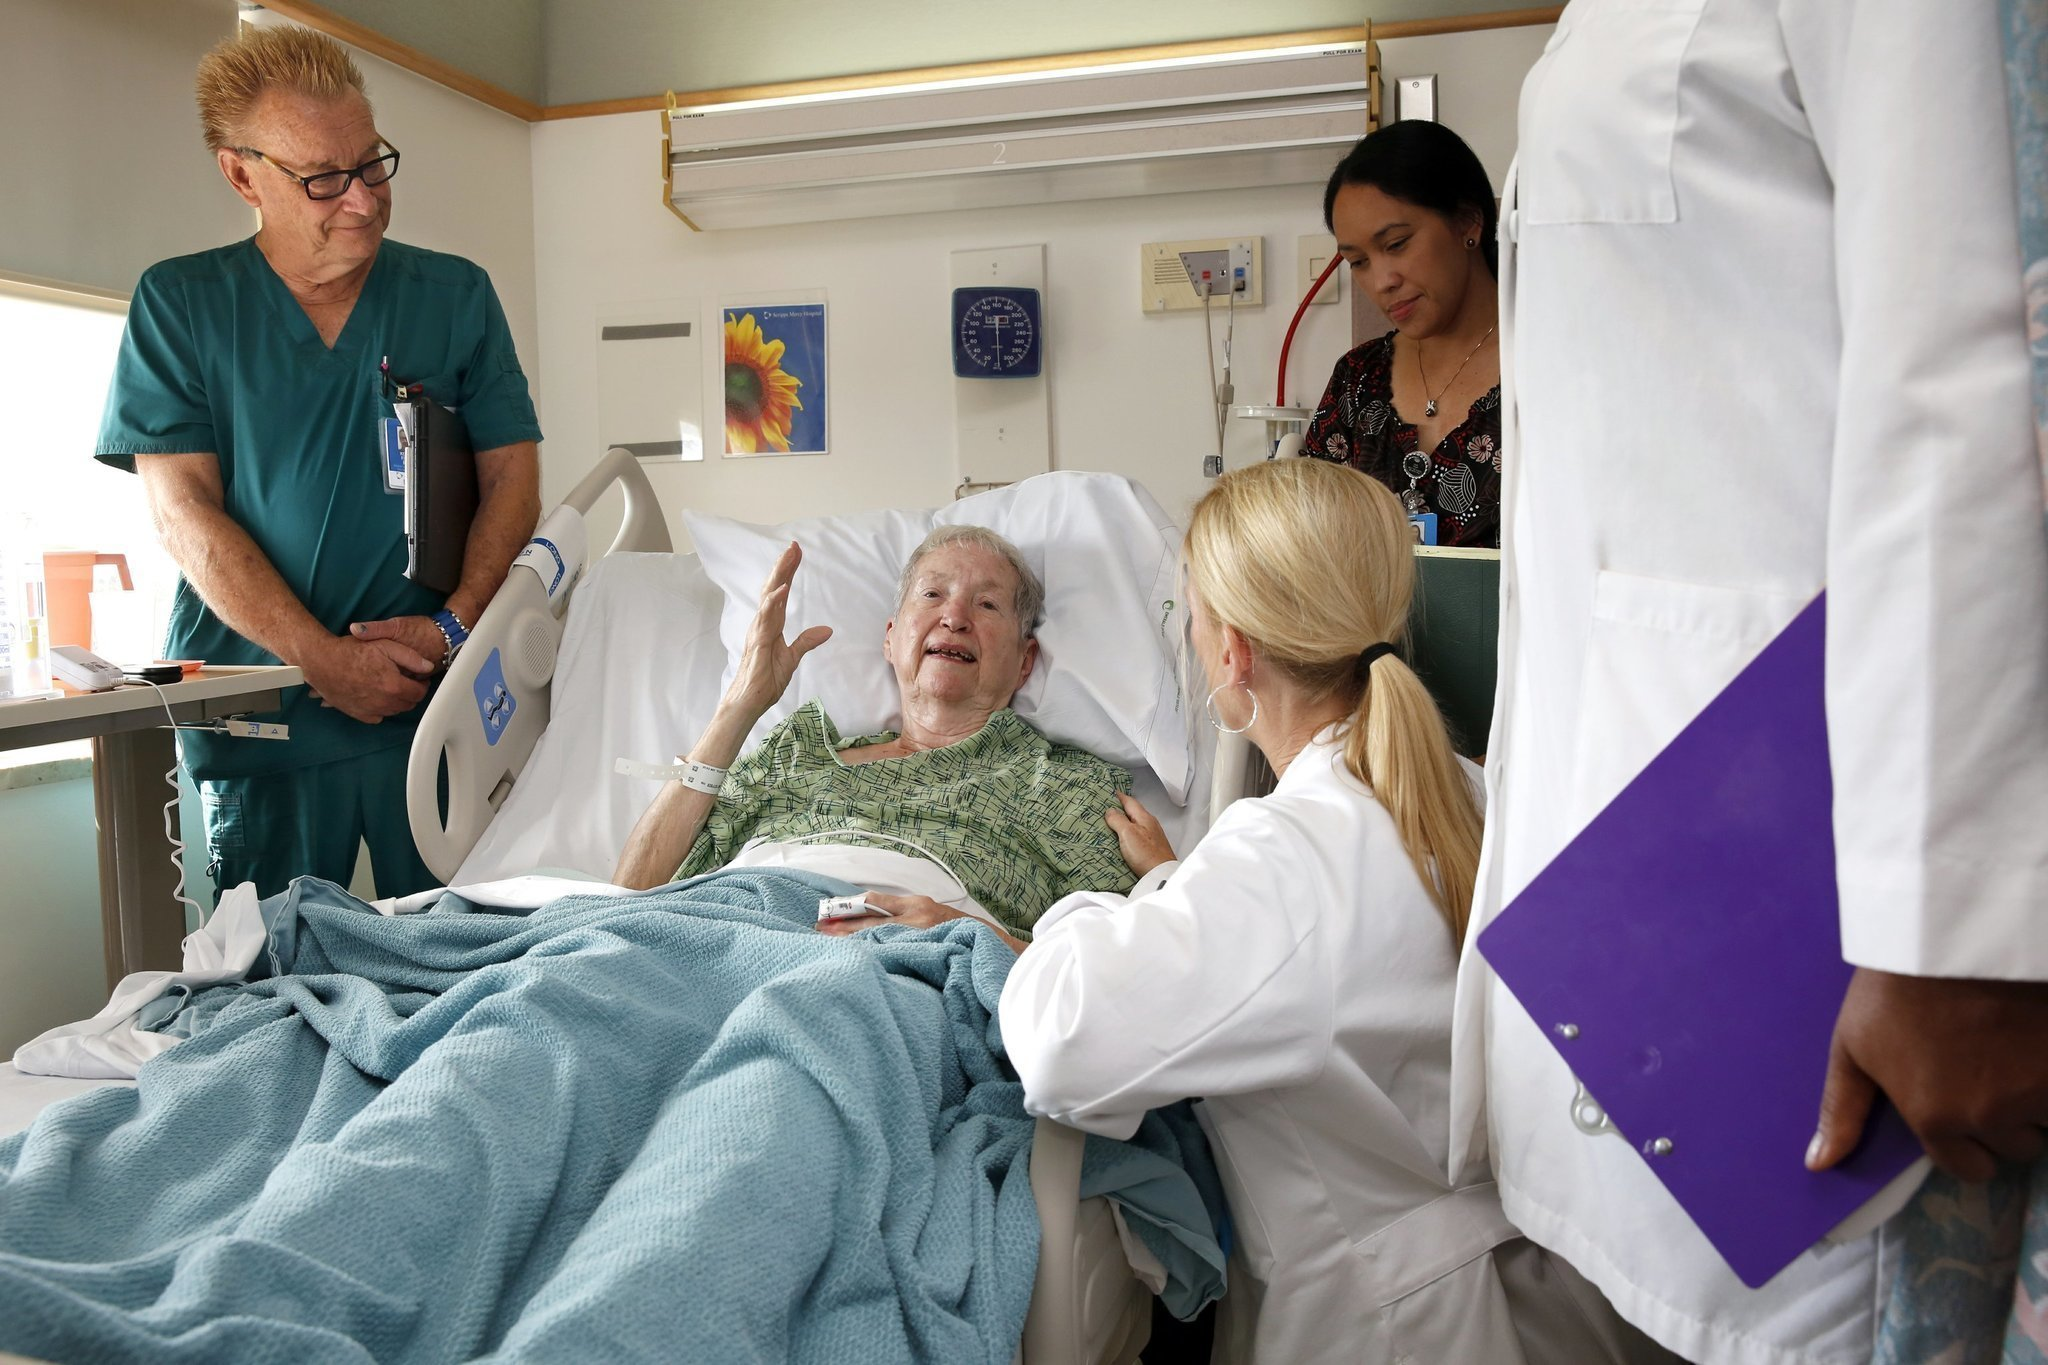 scripps mercy hospital in san diego fights to prevent readmissions scripps mercy hospital in san diego fights to prevent readmissions even among homeless patients the san diego union tribune